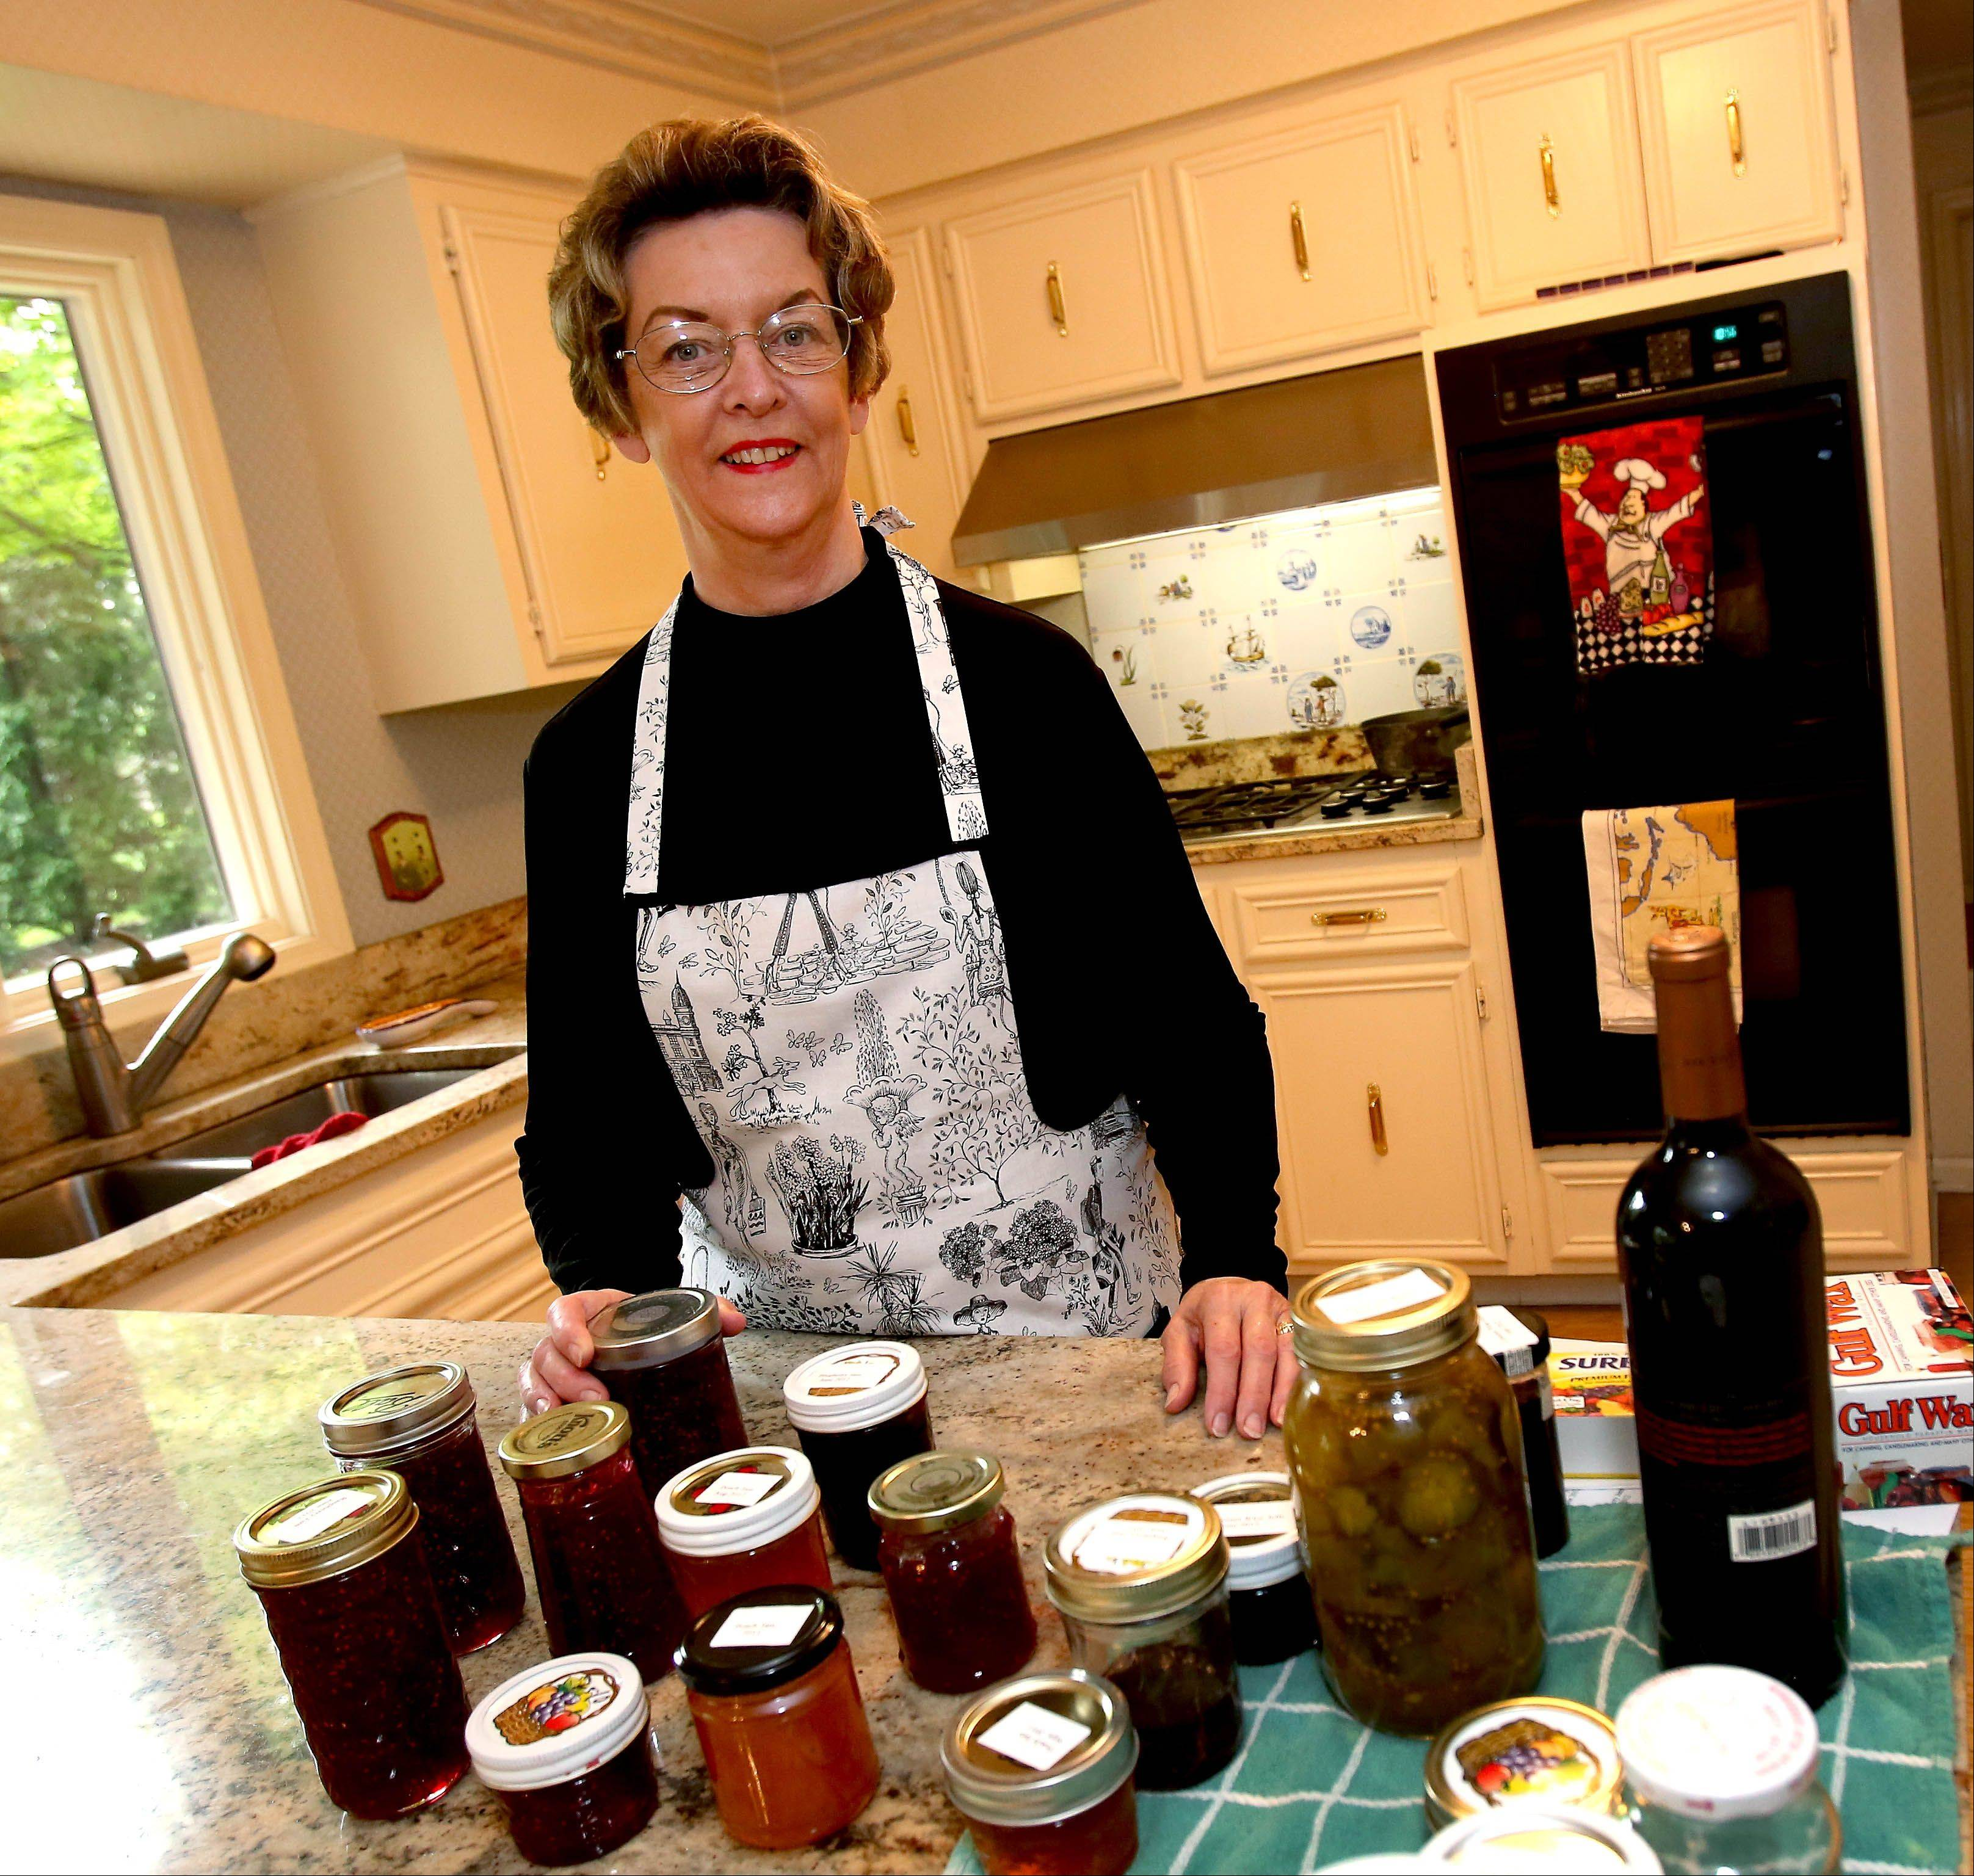 Cook of the week: Retired teacher pursues fruitful passion